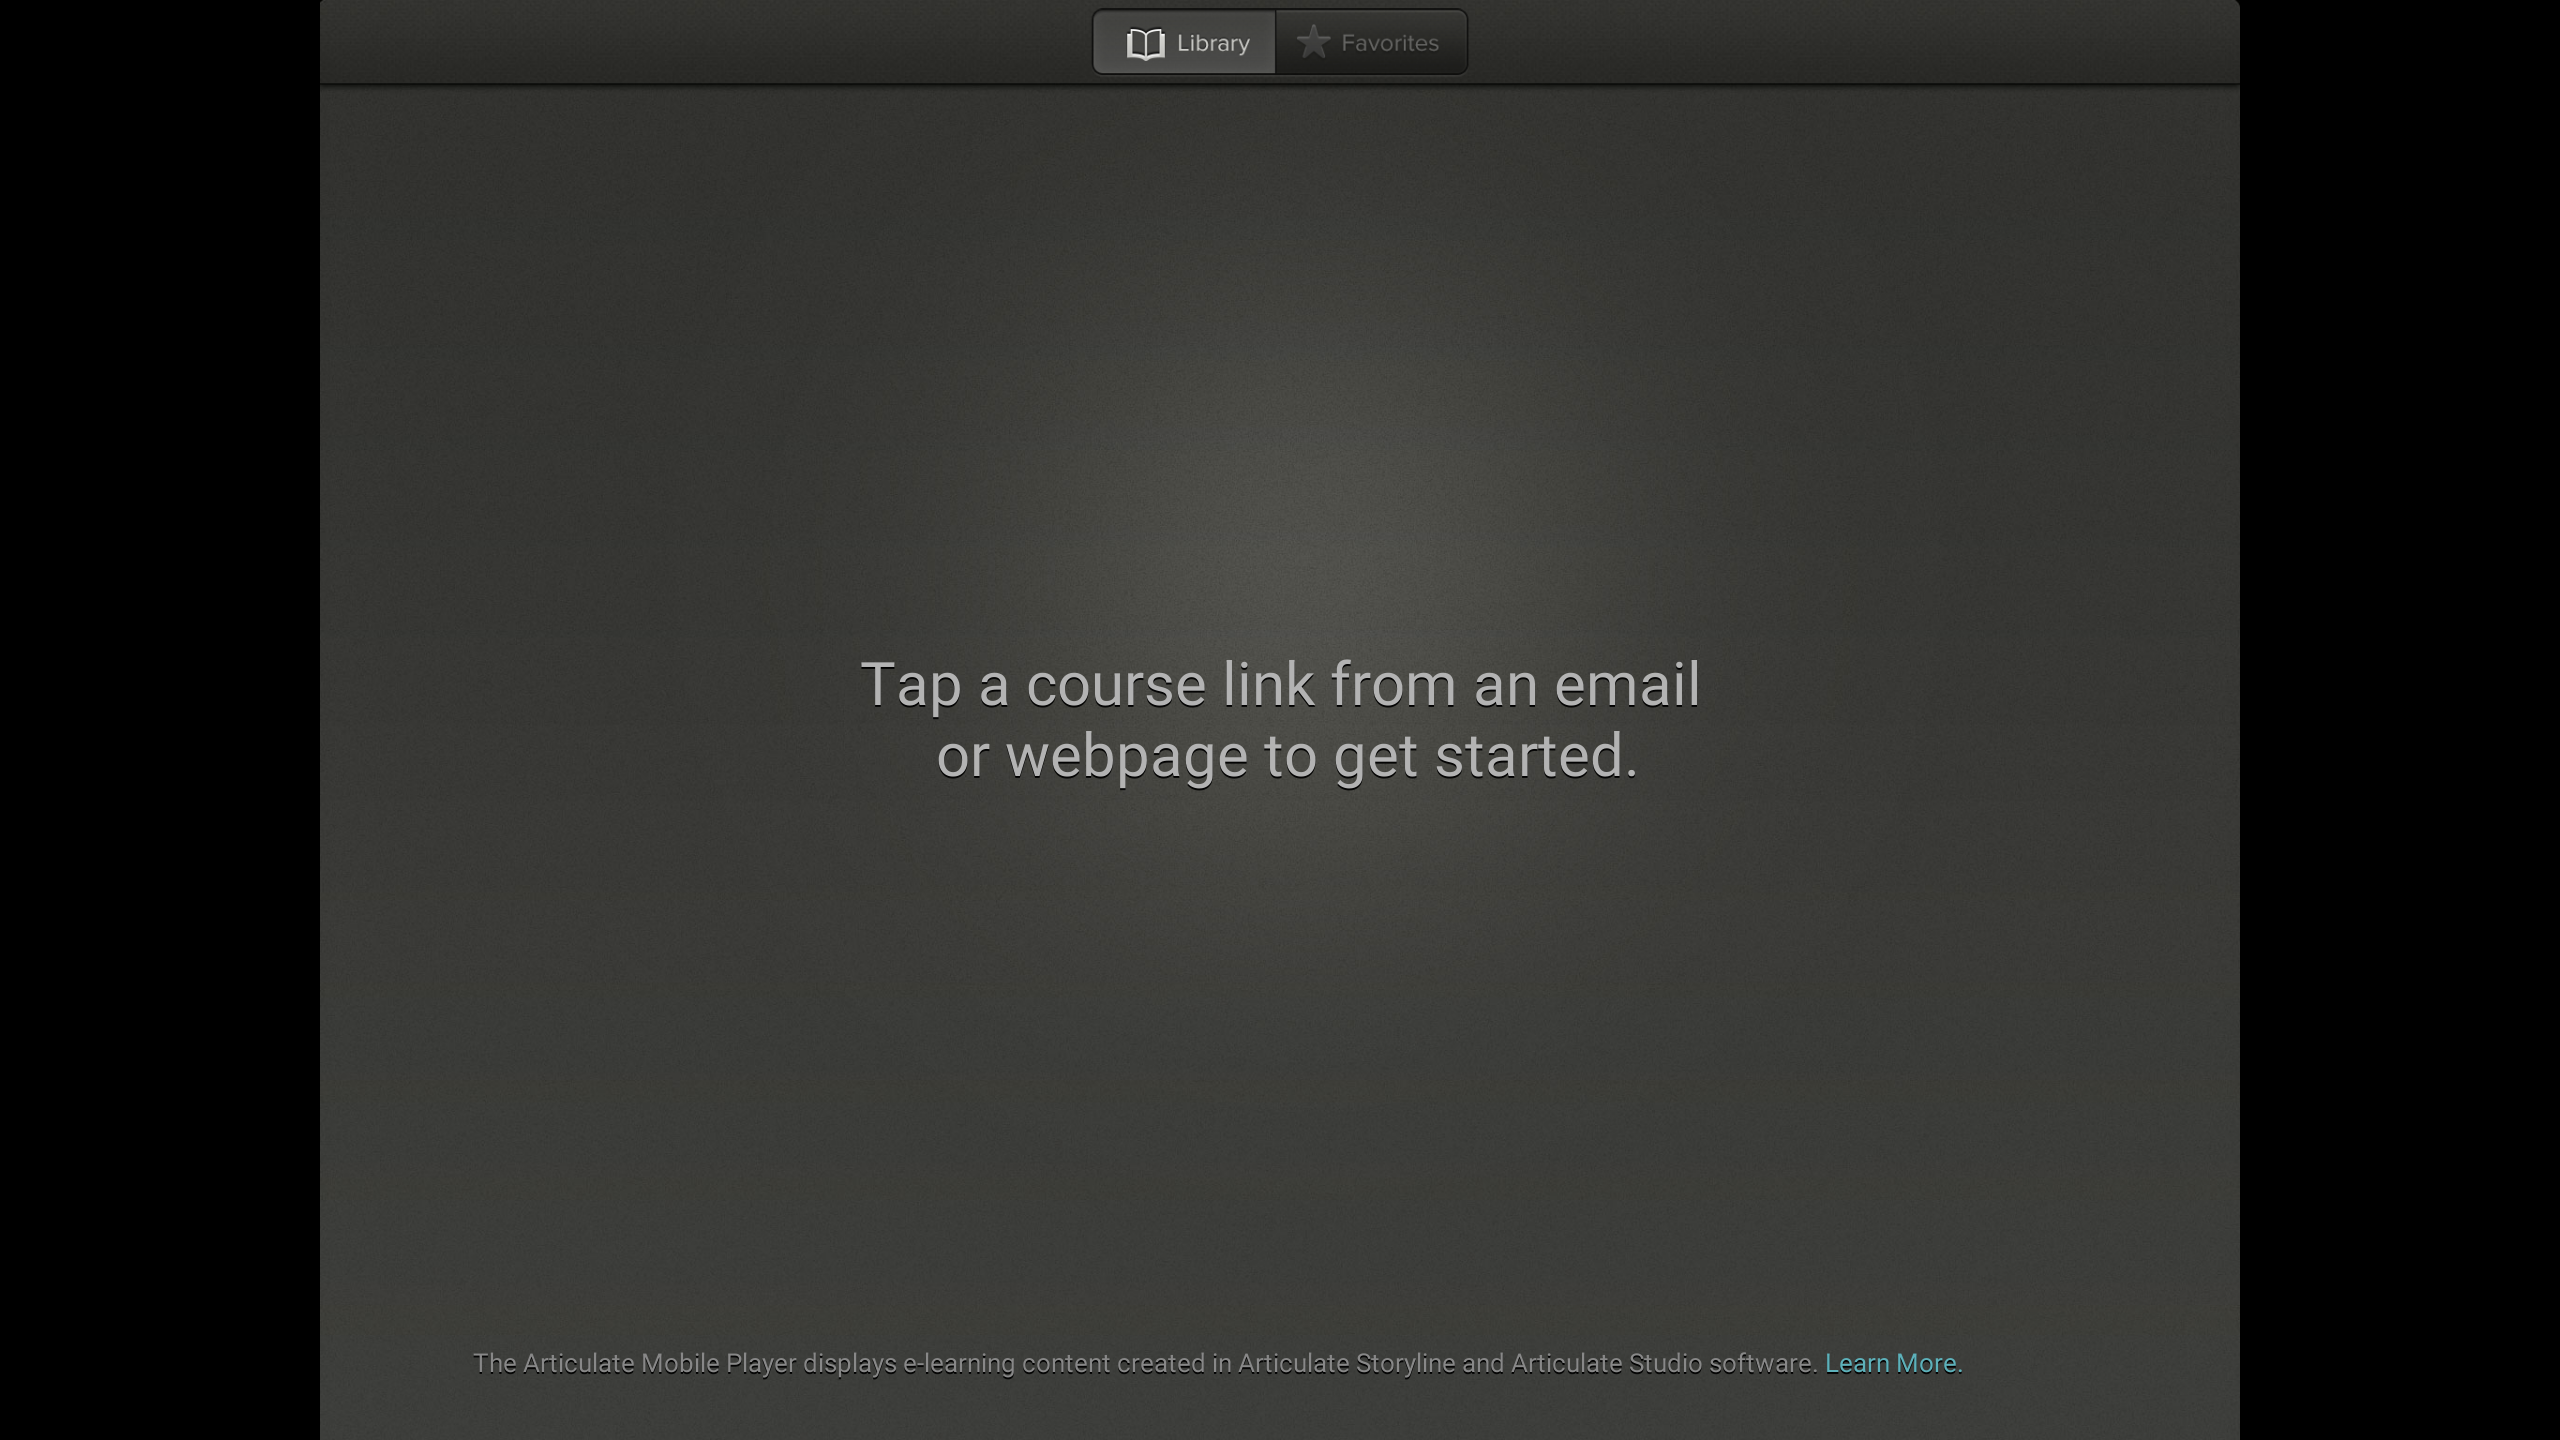 9-tap-a-course-link-from-an-email....png